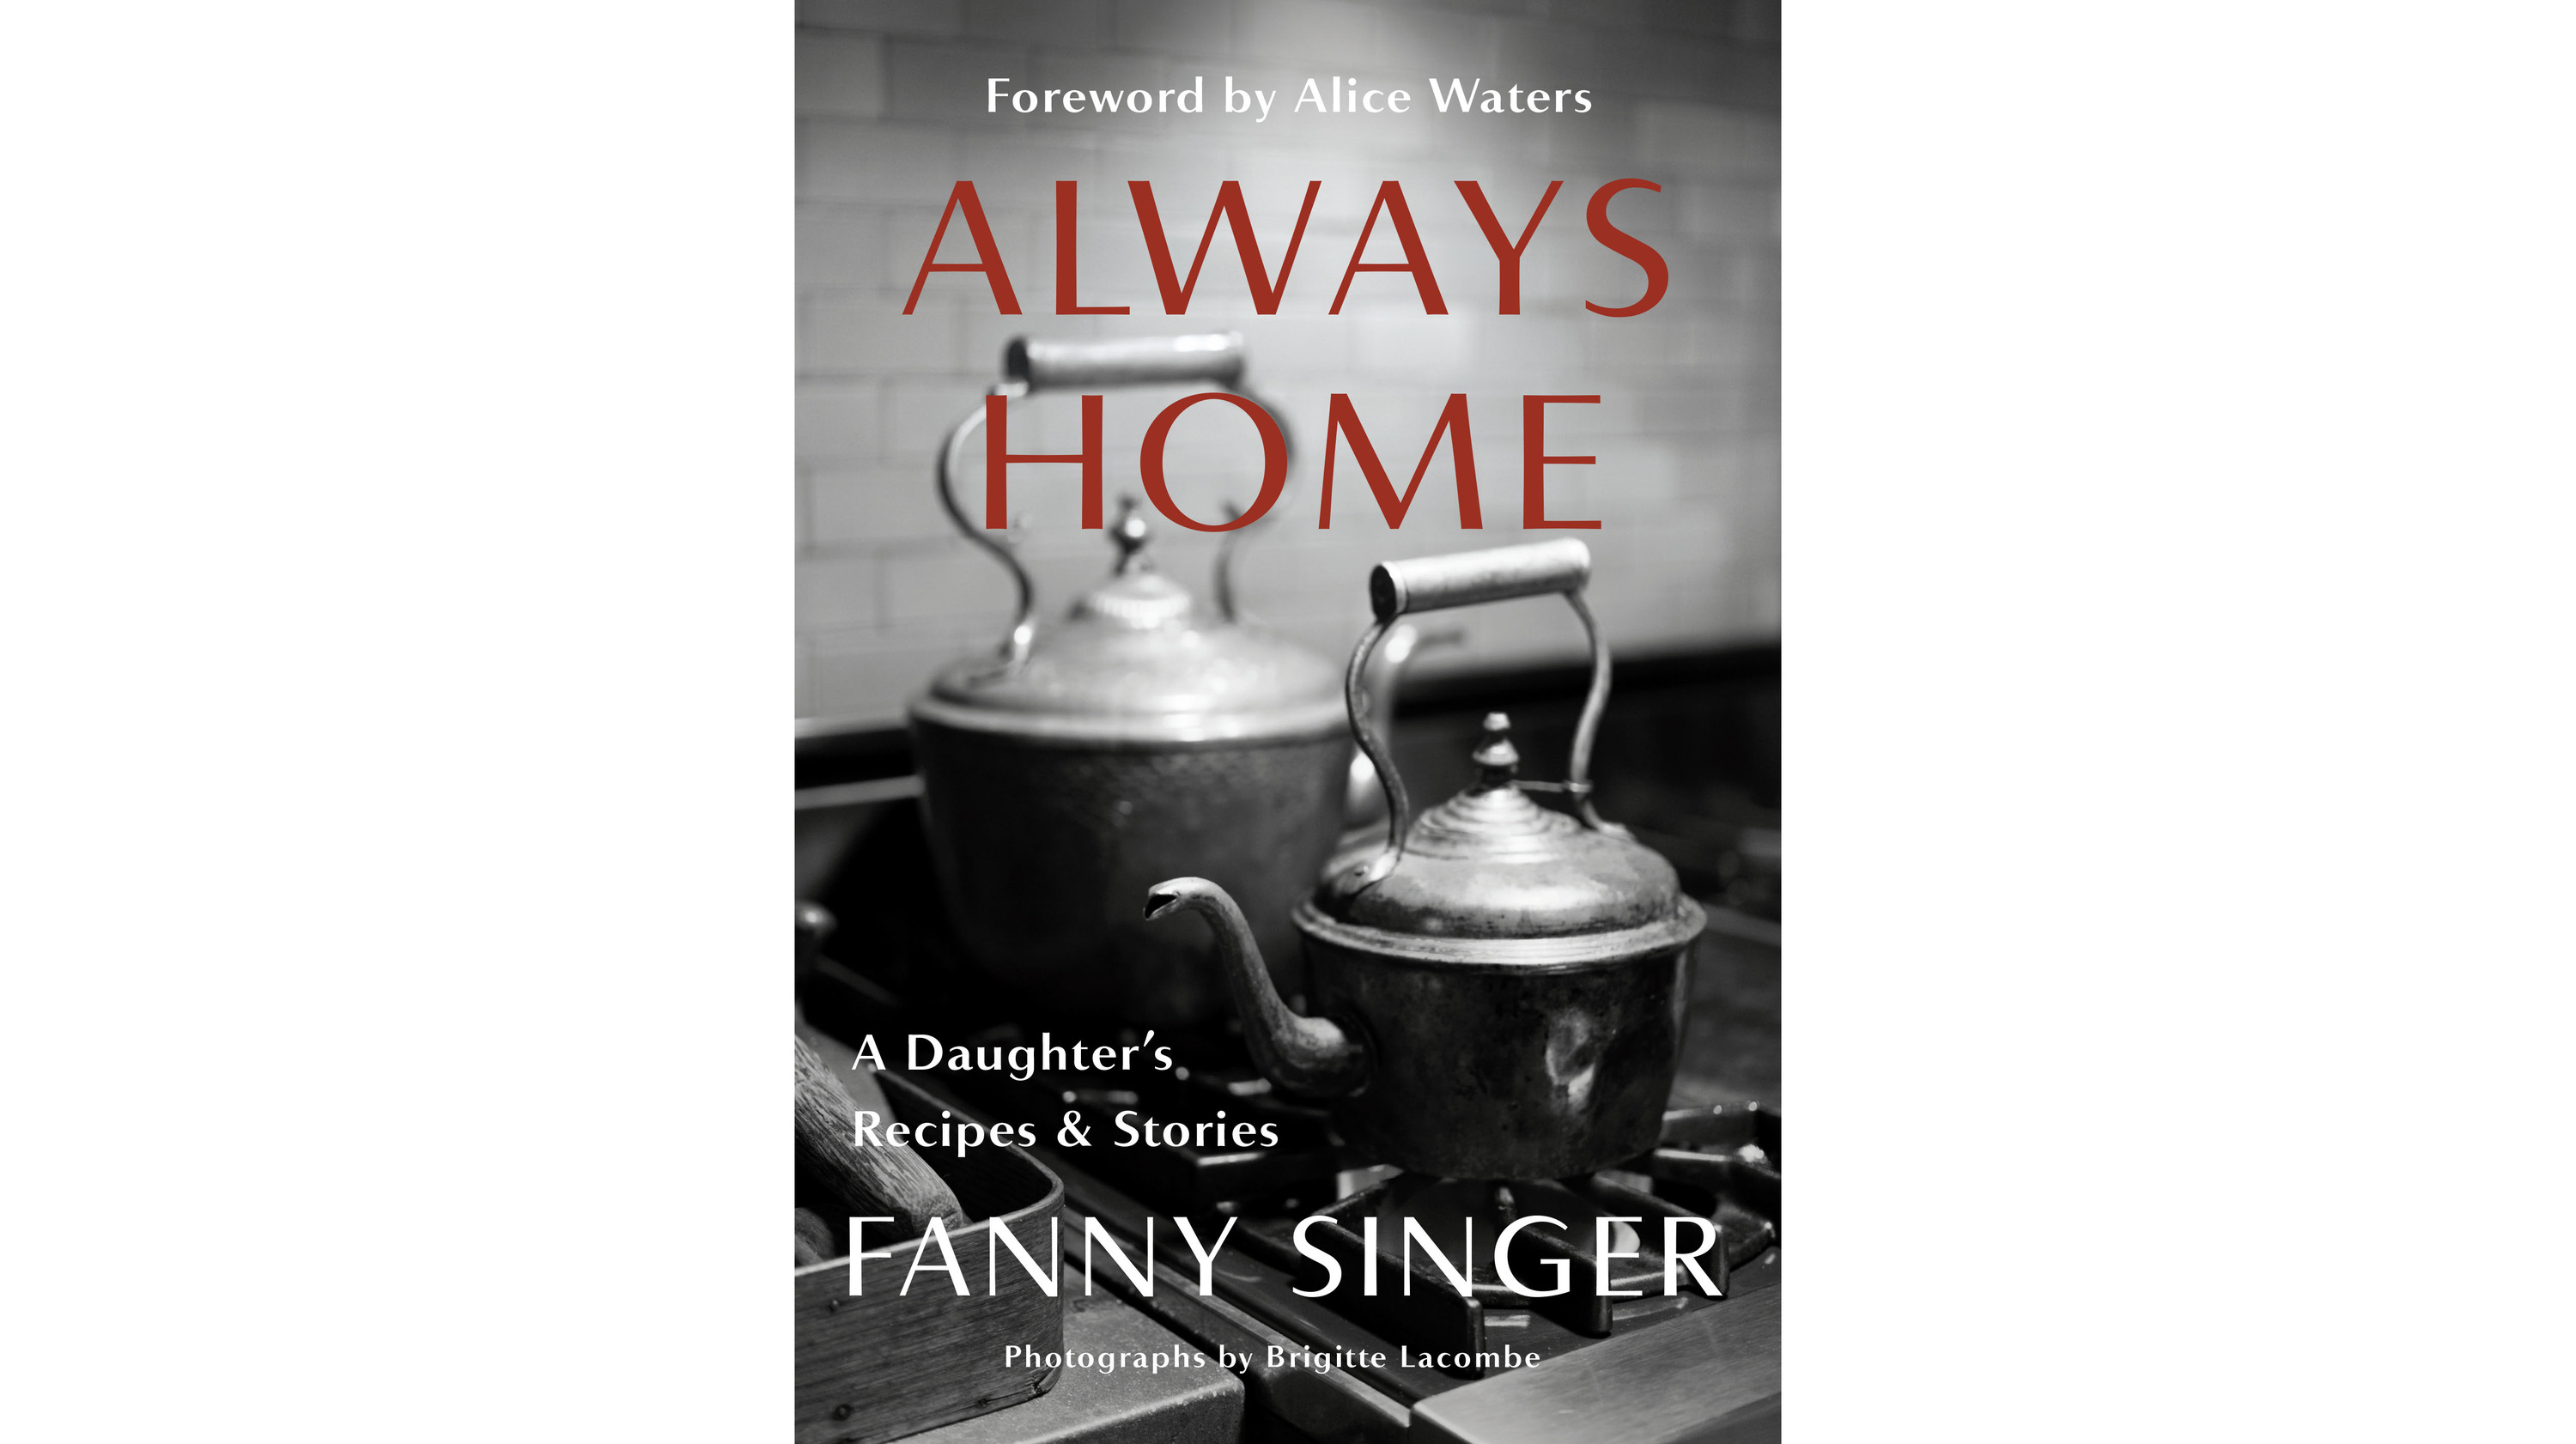 Always Home by Fanny Singer